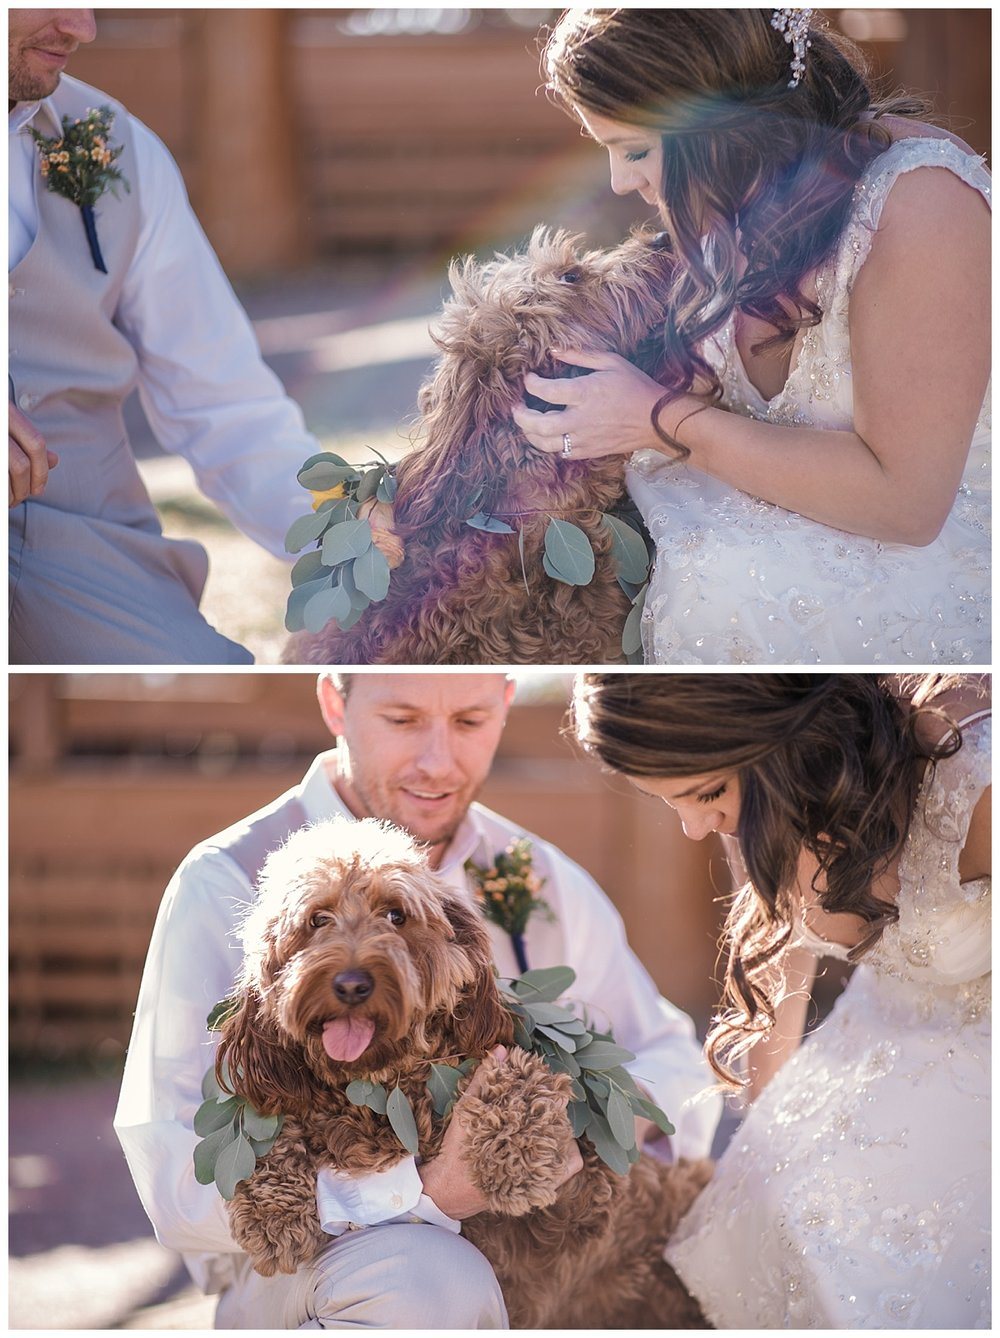 bride and groom and dog, Rocky mountain adventure elopement, colorado wedding photographer, denver wedding photographer, denver elopement photographer, colorado elopement photographer, best wedding photographer colorado, best wedding photographer denver, winter park wedding